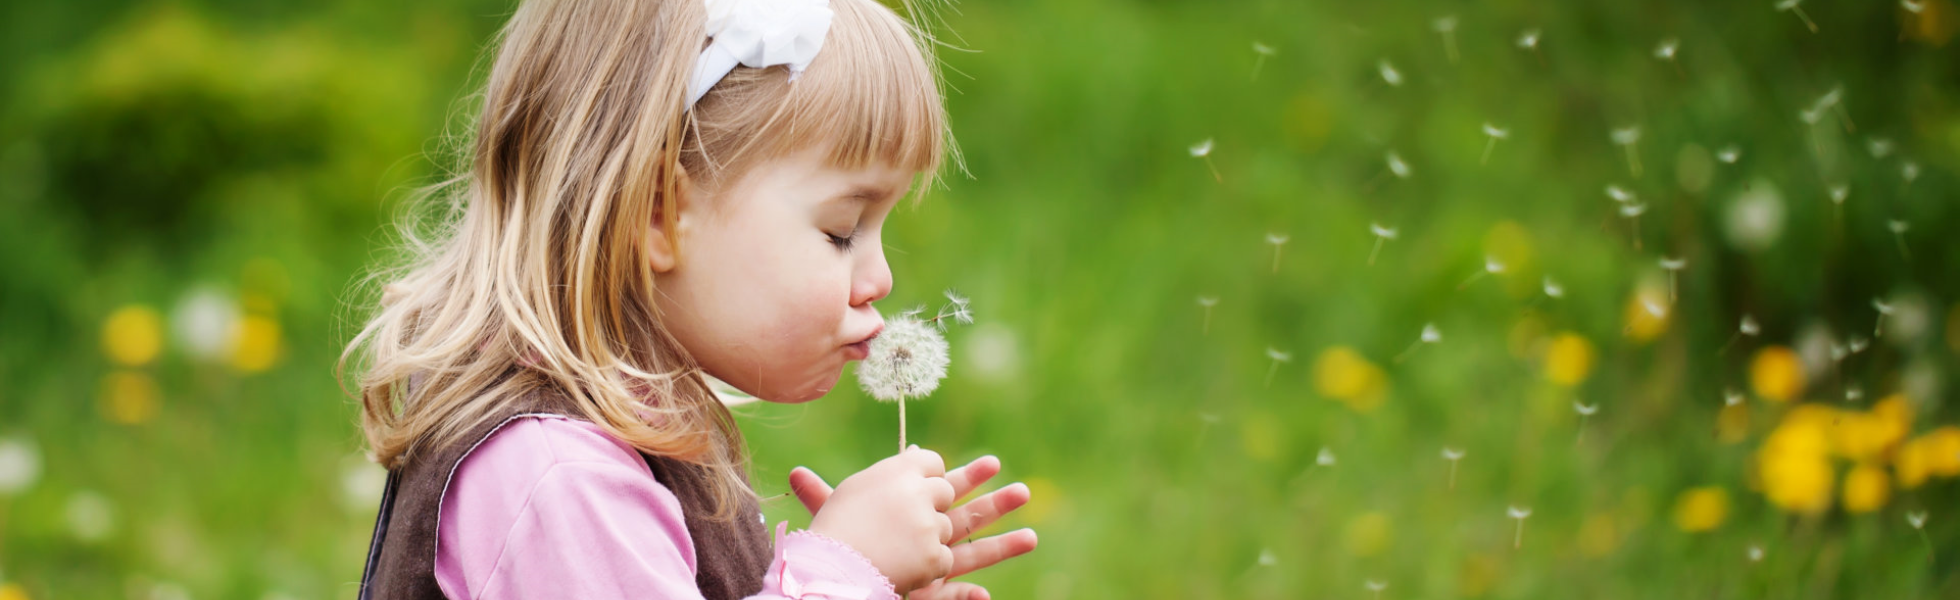 Girl kissing a flower